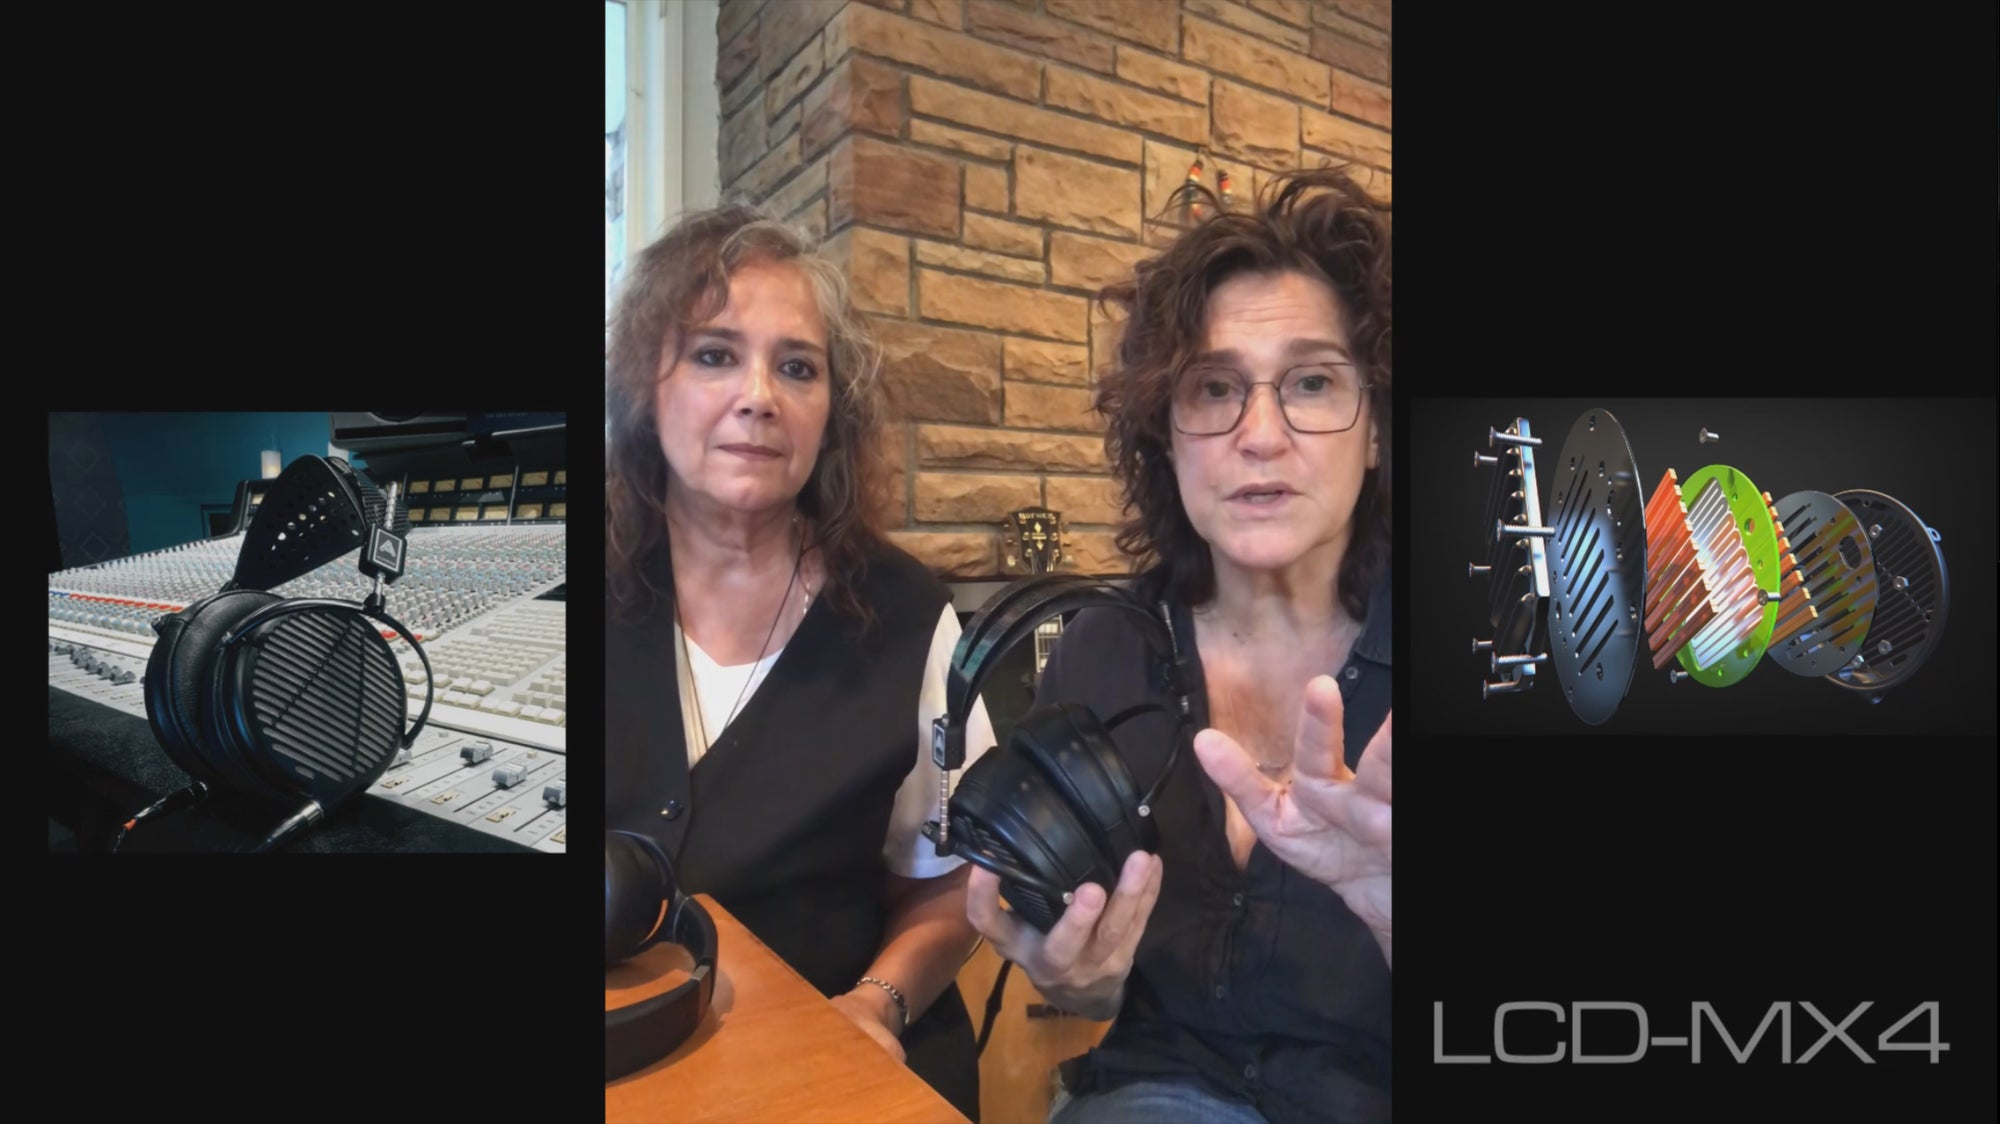 Wendy and Lisa of Prince and the Revolution Compare the LCD-MX4 to the LCD-1